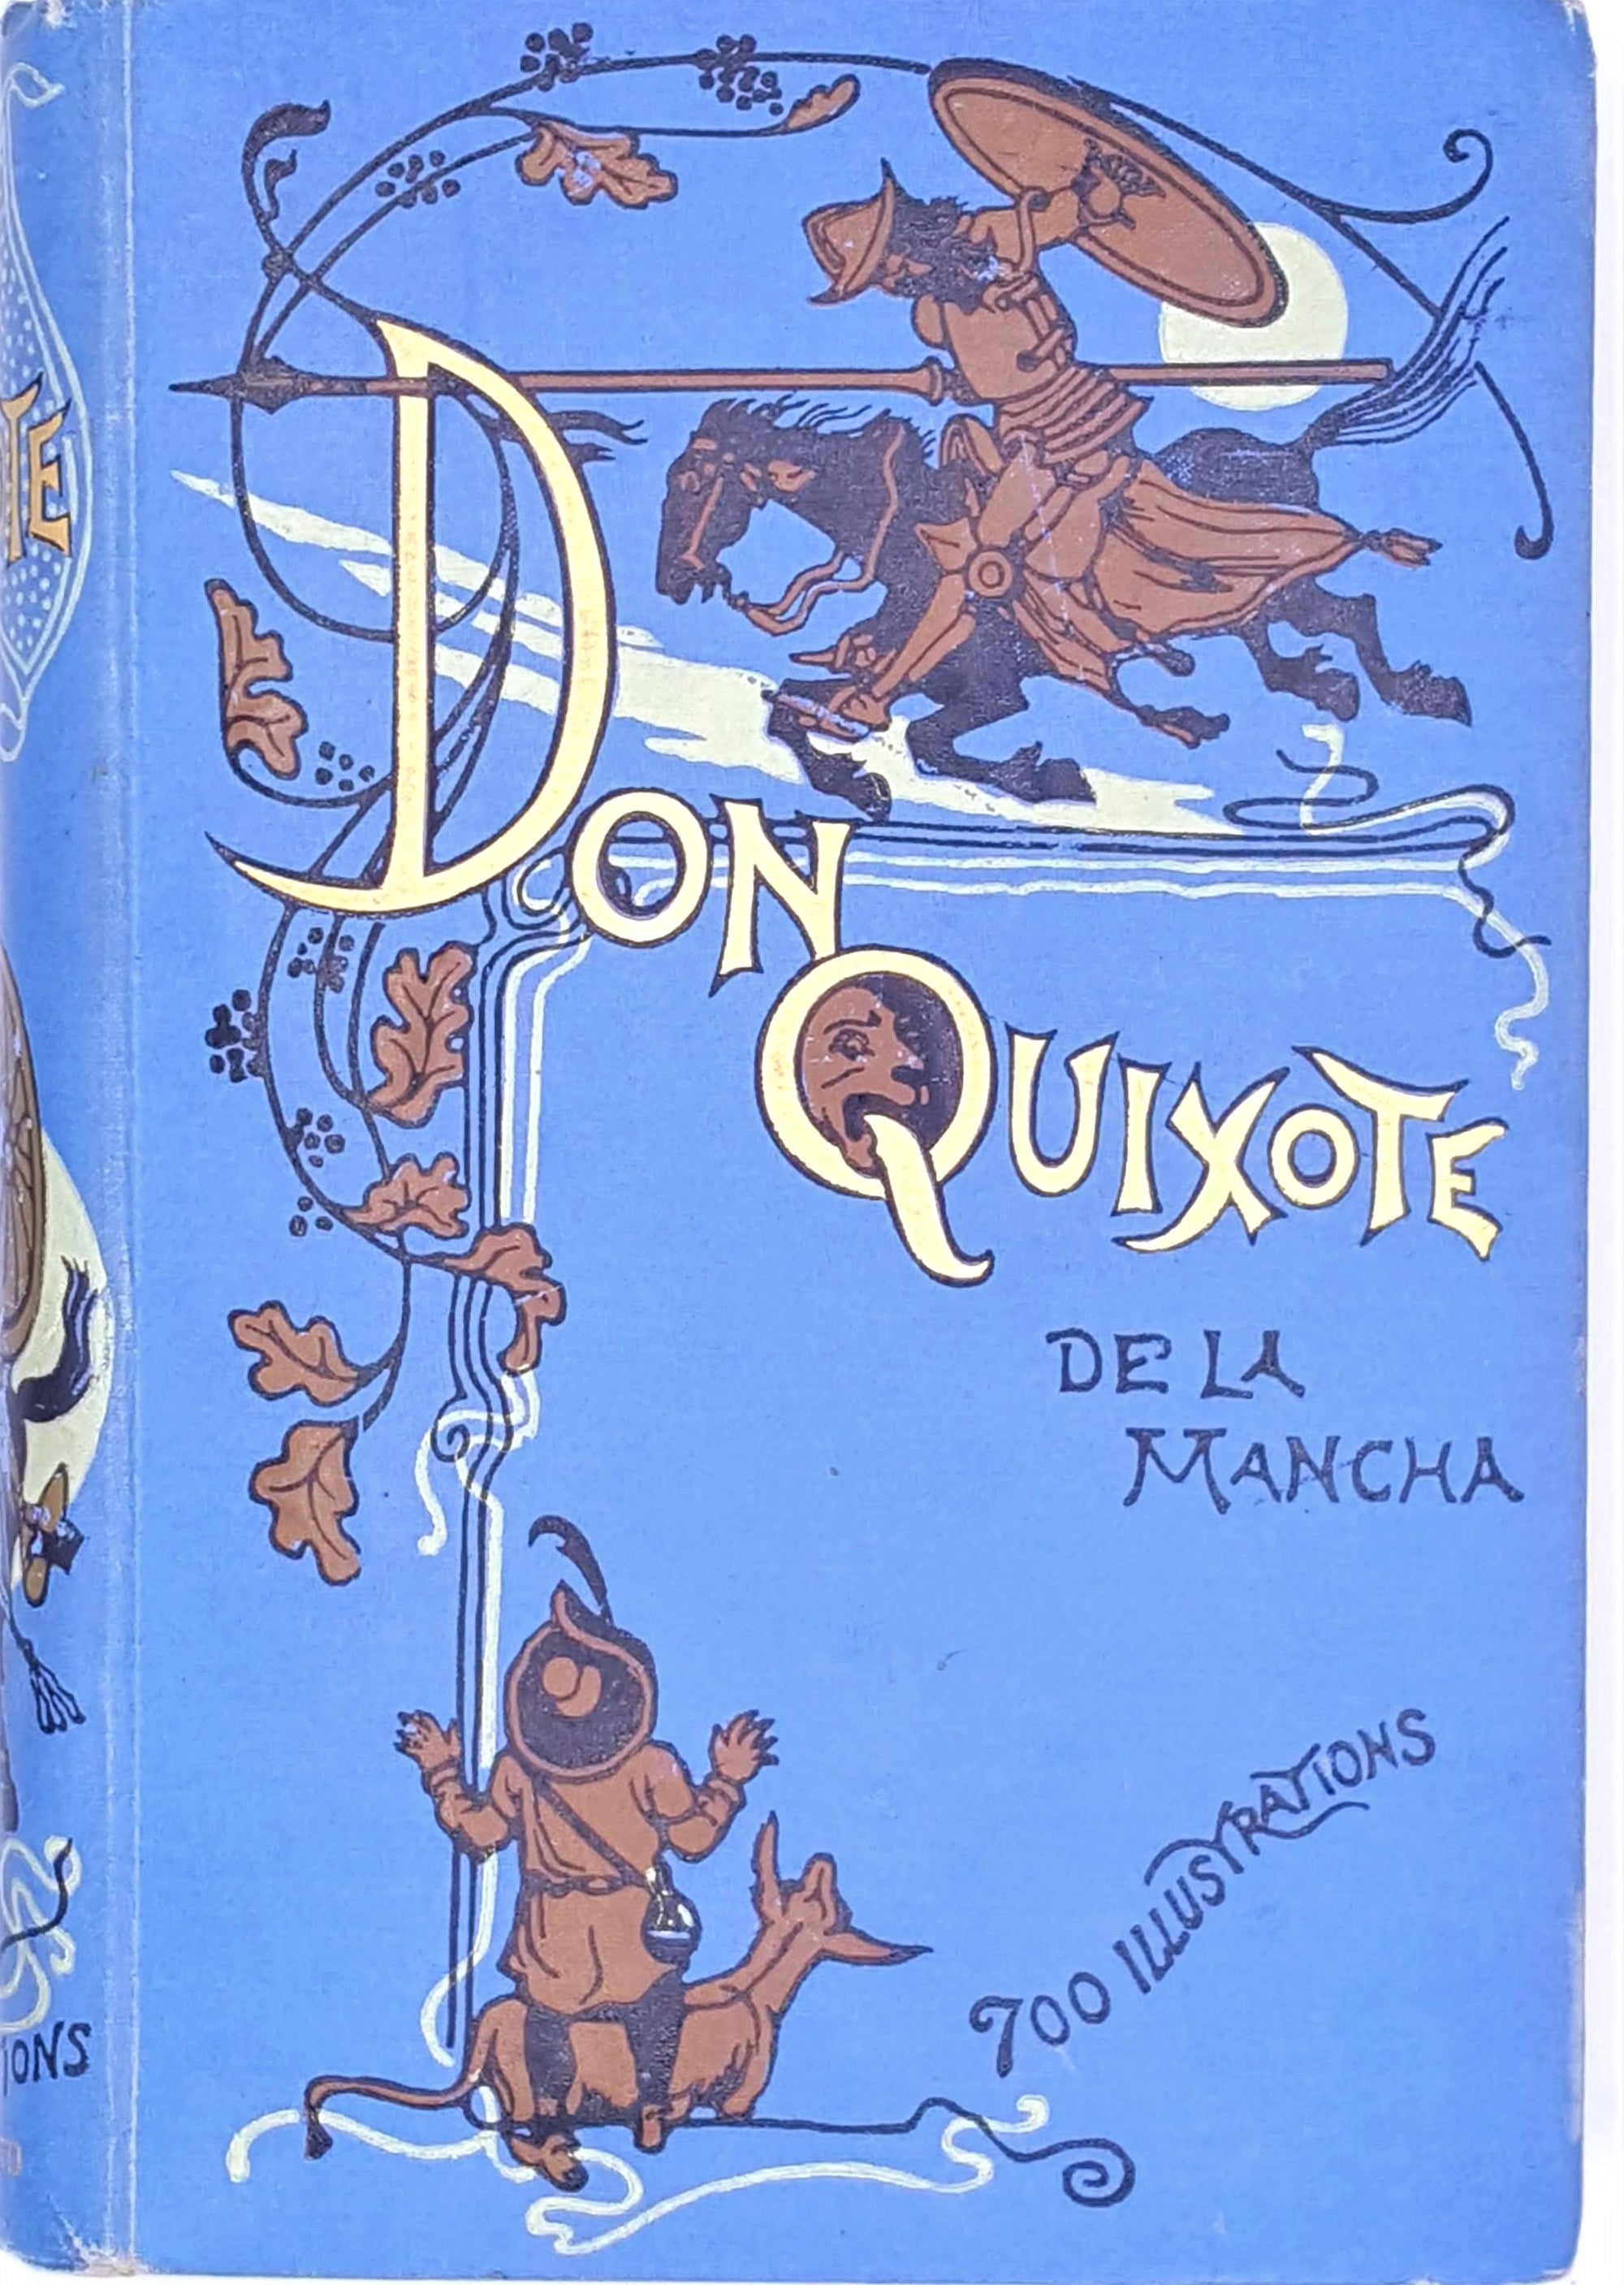 Don Quixote de la Mancha by Cervantes 1898